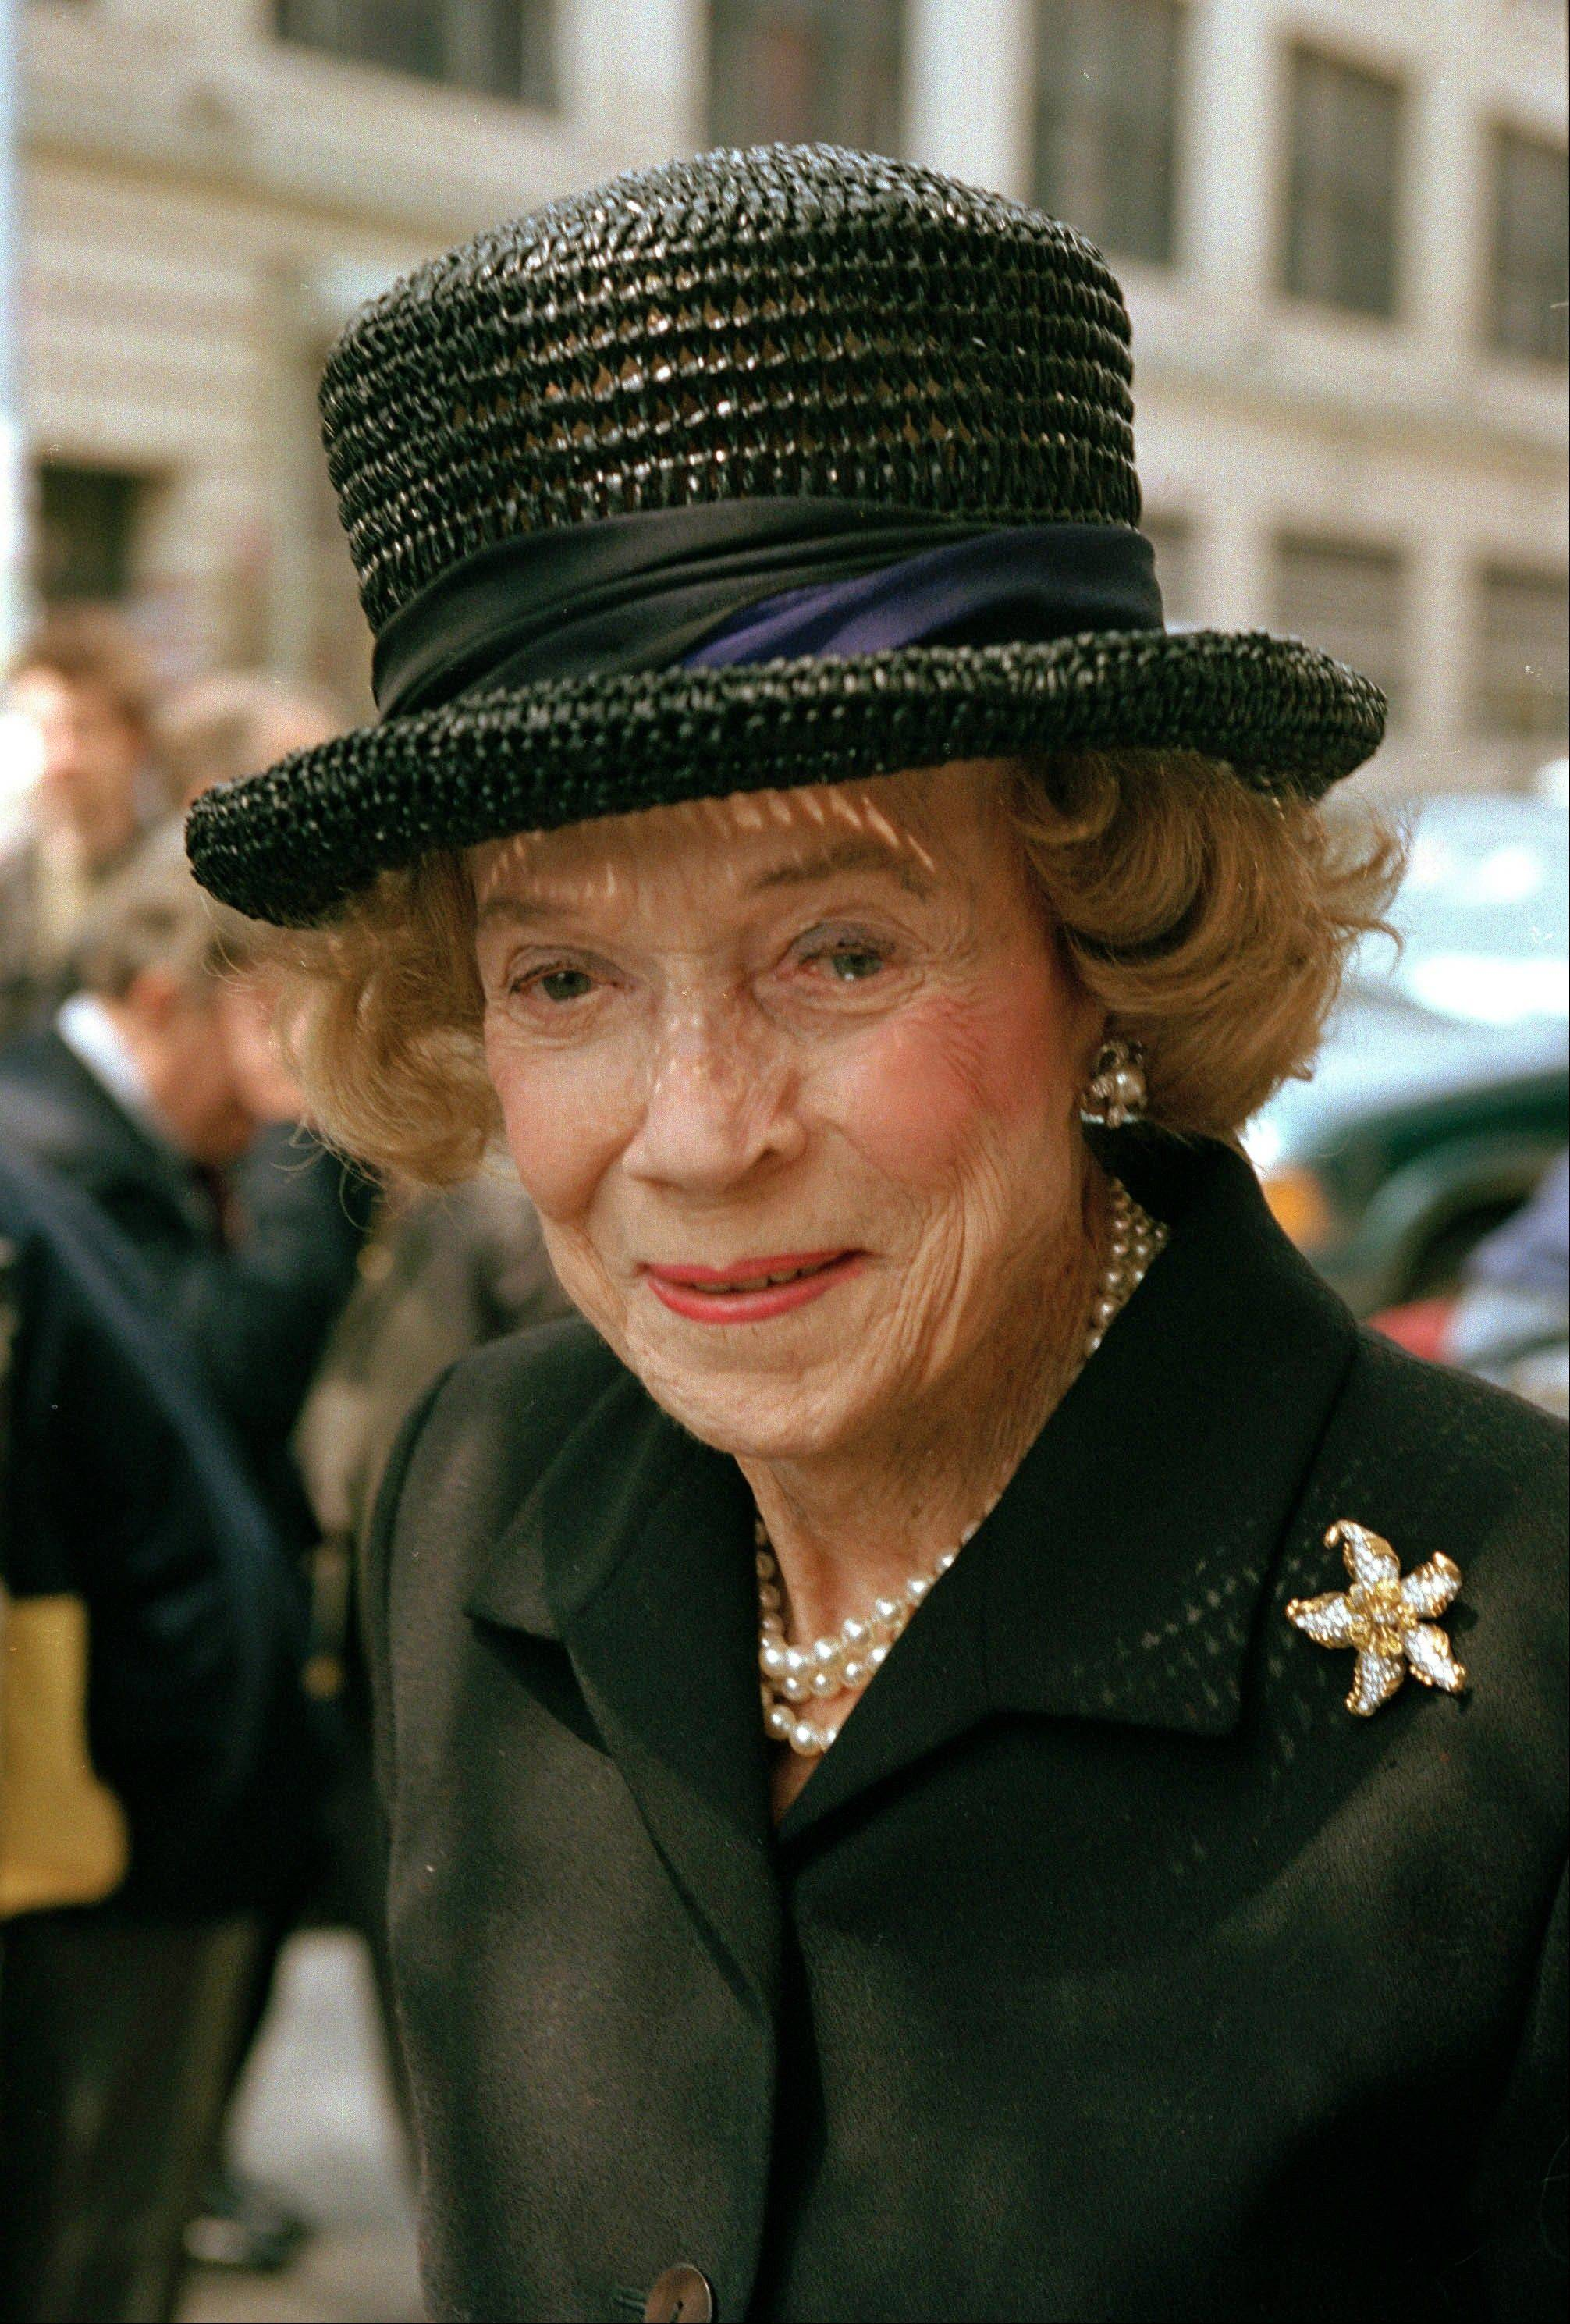 May 1, 1997 file photo of Brooke Astor, then 95.